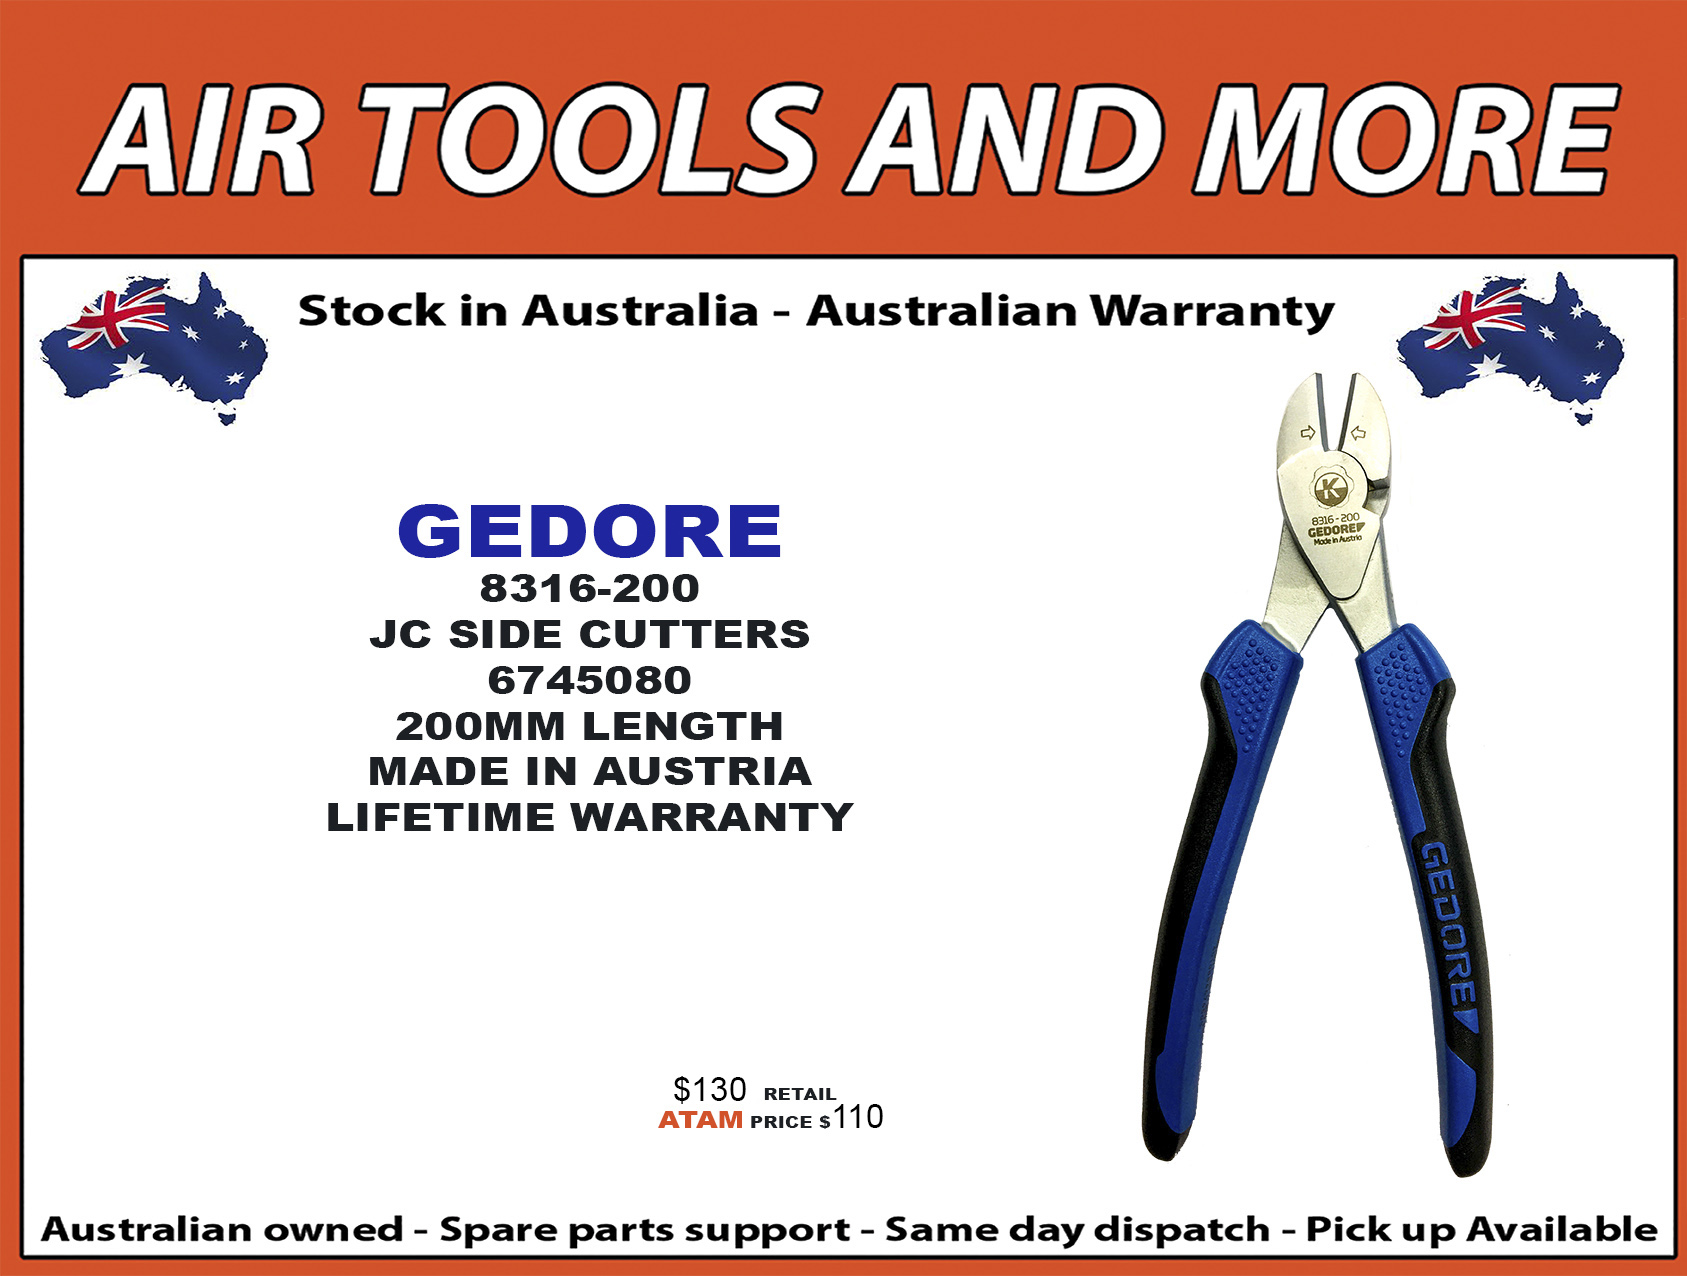 http://airtoolsandmore.com.au/tools/gedore-8316200-jc-side-cutters-p-619.html